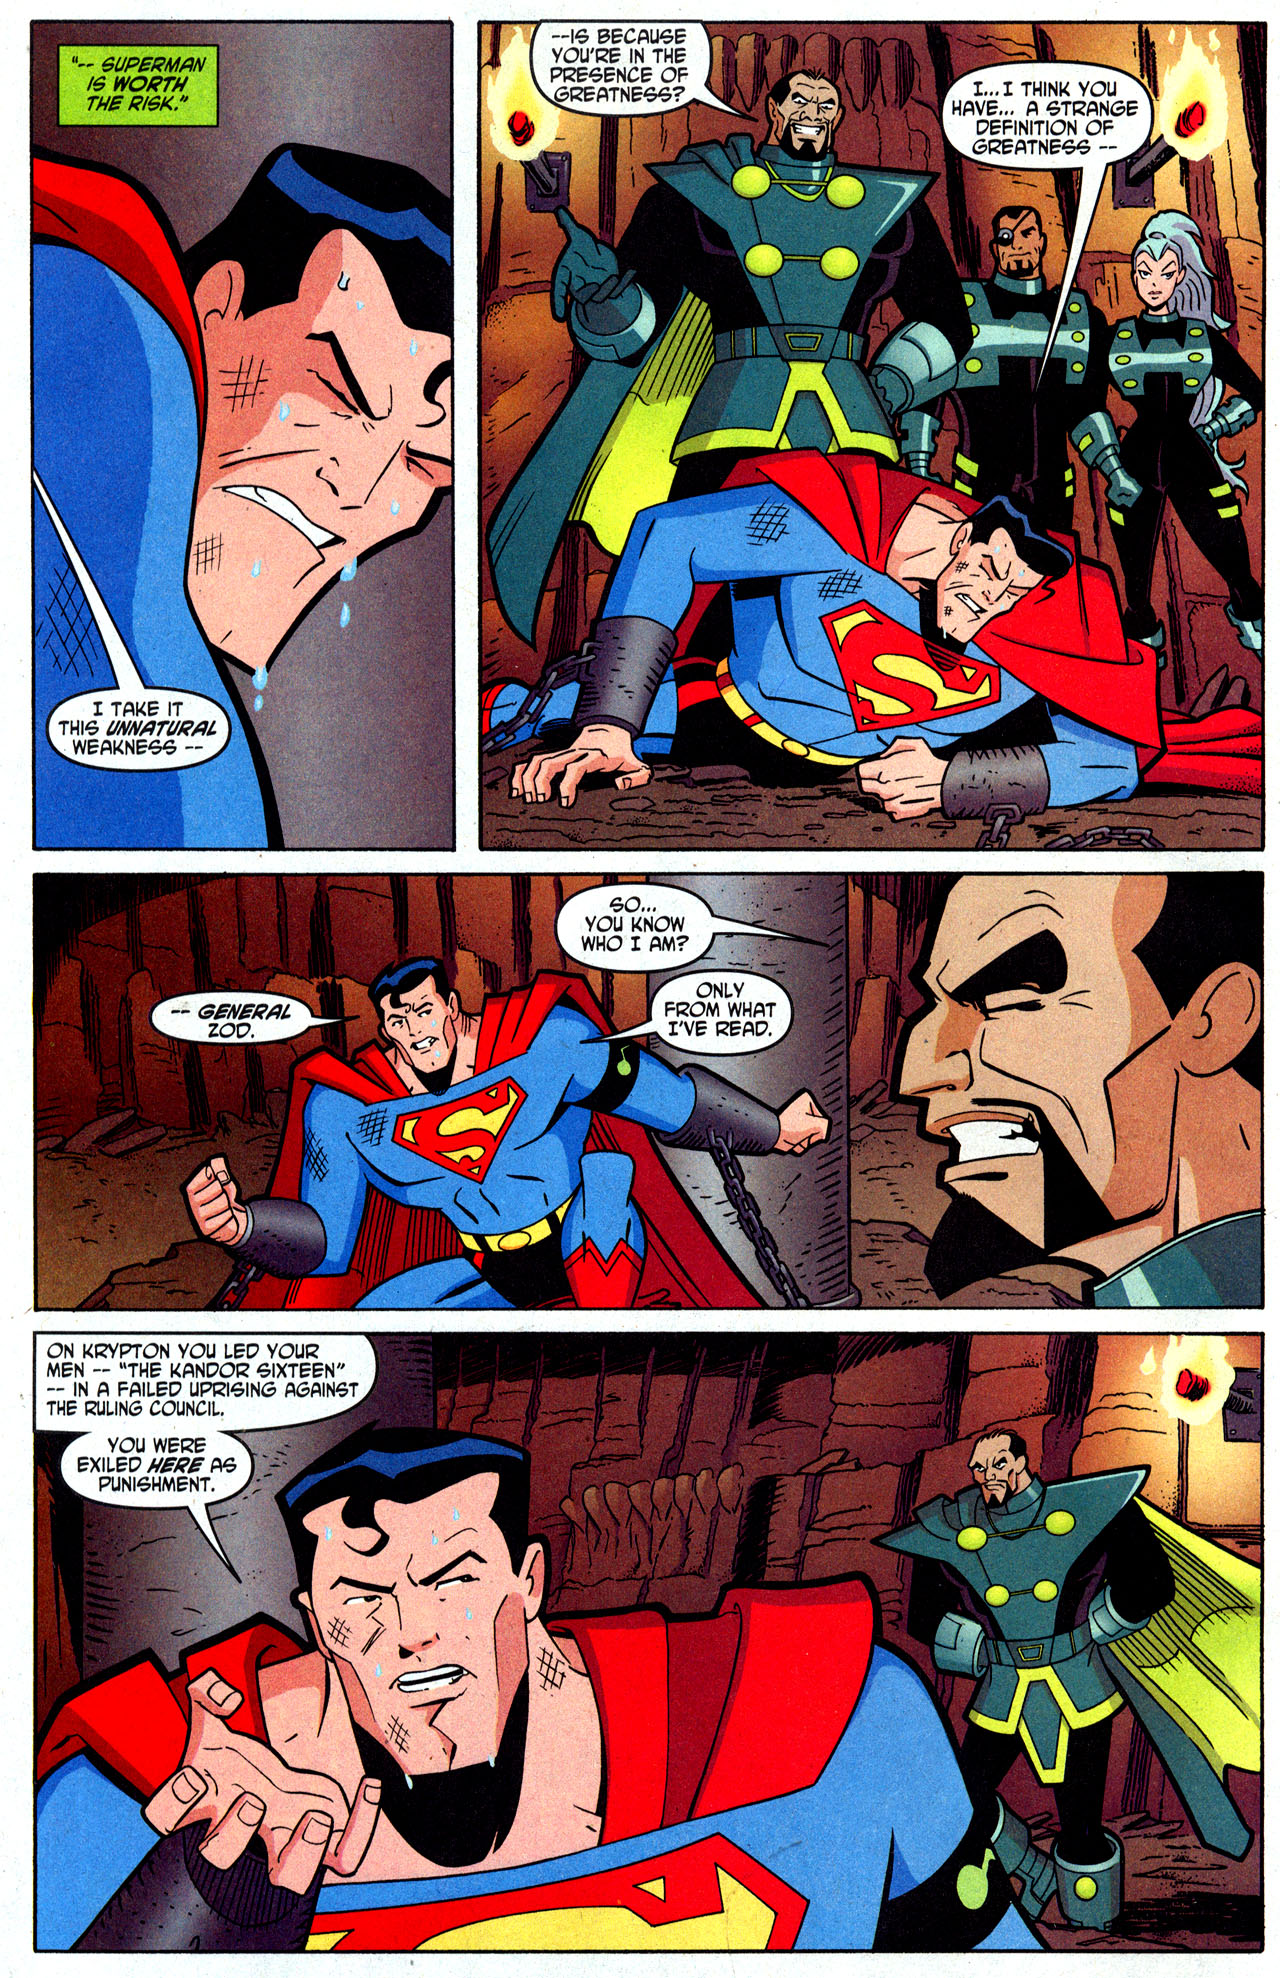 JUSTICE LEAGUE UNLIMITED Comic #34 General Zod SOLD OUT